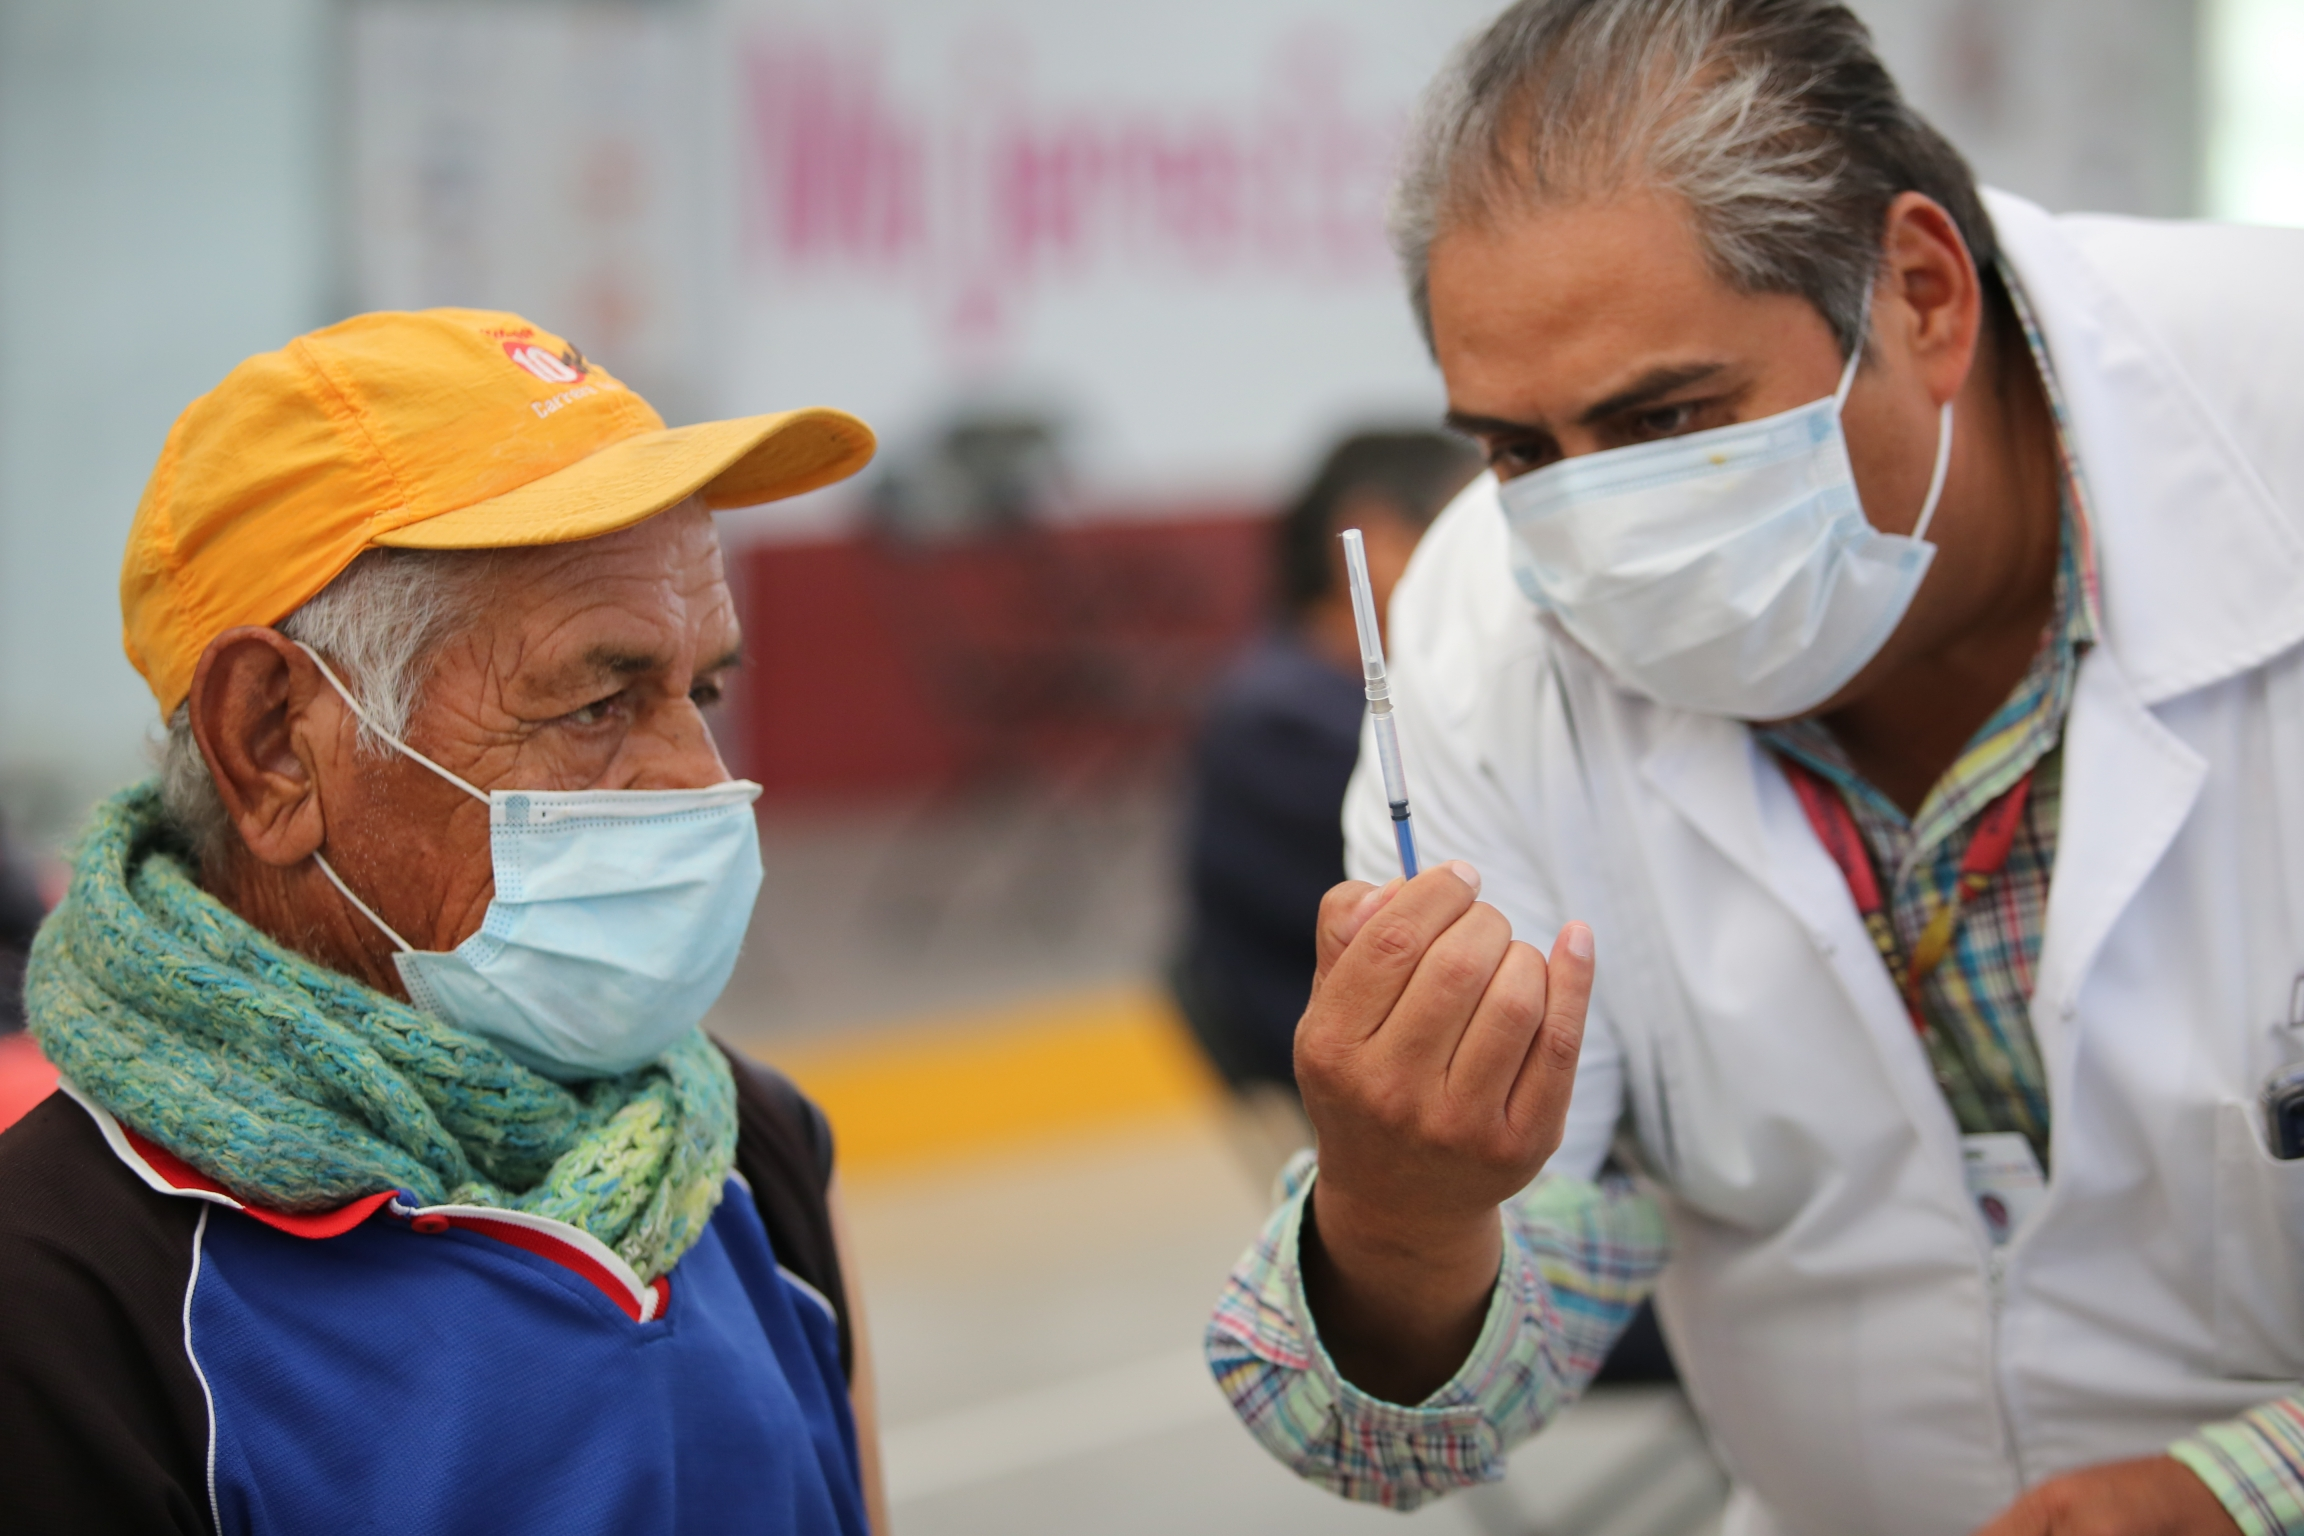 A nurse shows an elderly man a syringe prepared with a dose of the Sinovac COVID-19 vaccine, before he is inoculated at the Americas Cultural Center in Ecatepec, Mexico, April 3, 2021.